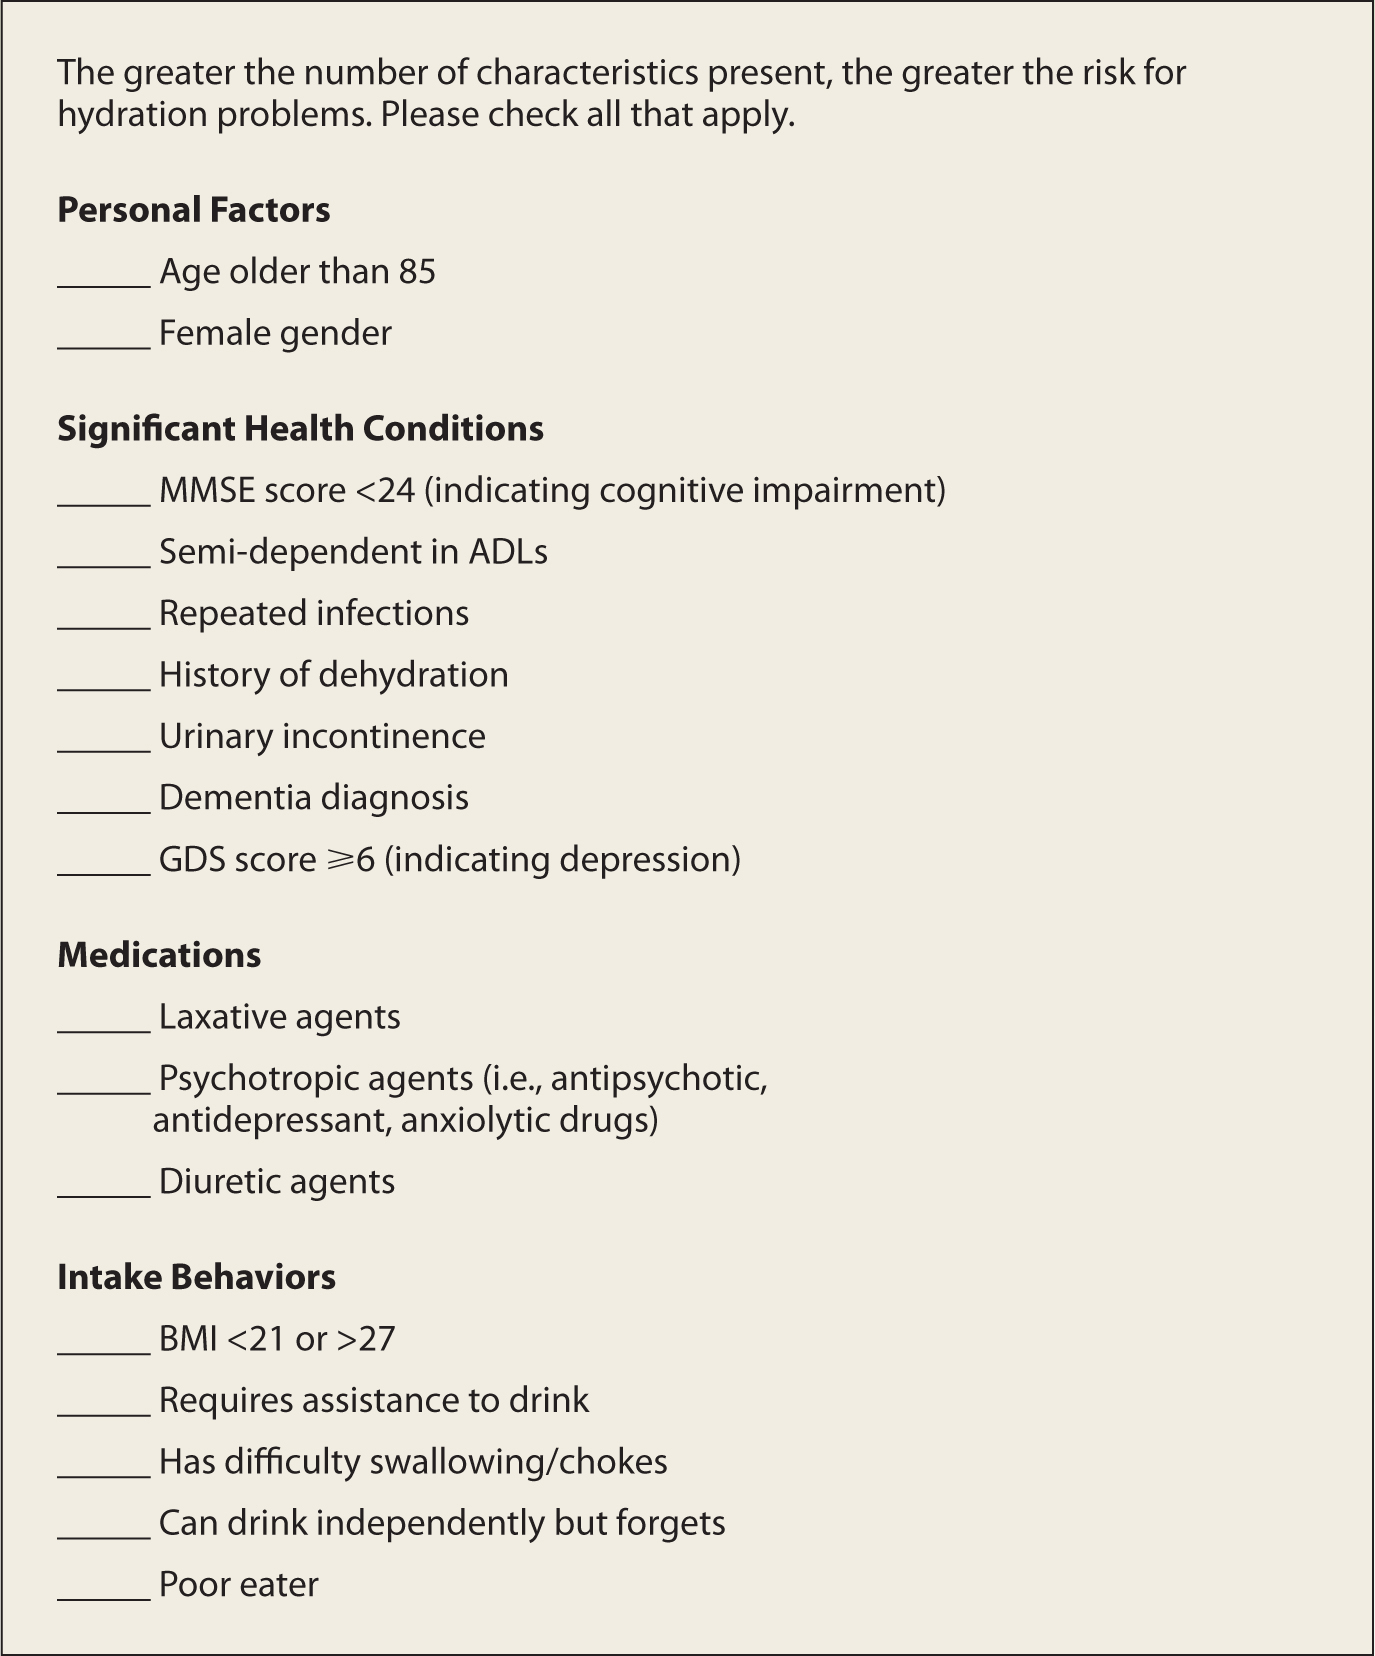 Dehydration Risk Appraisal Checklist.Note. Adapted from text in Mentes and Wang (2011). MMSE = Mini-Mental State Examination; GDS = Geriatric Depression Scale; ADLs = activities of daily living; BMI = body mass index.